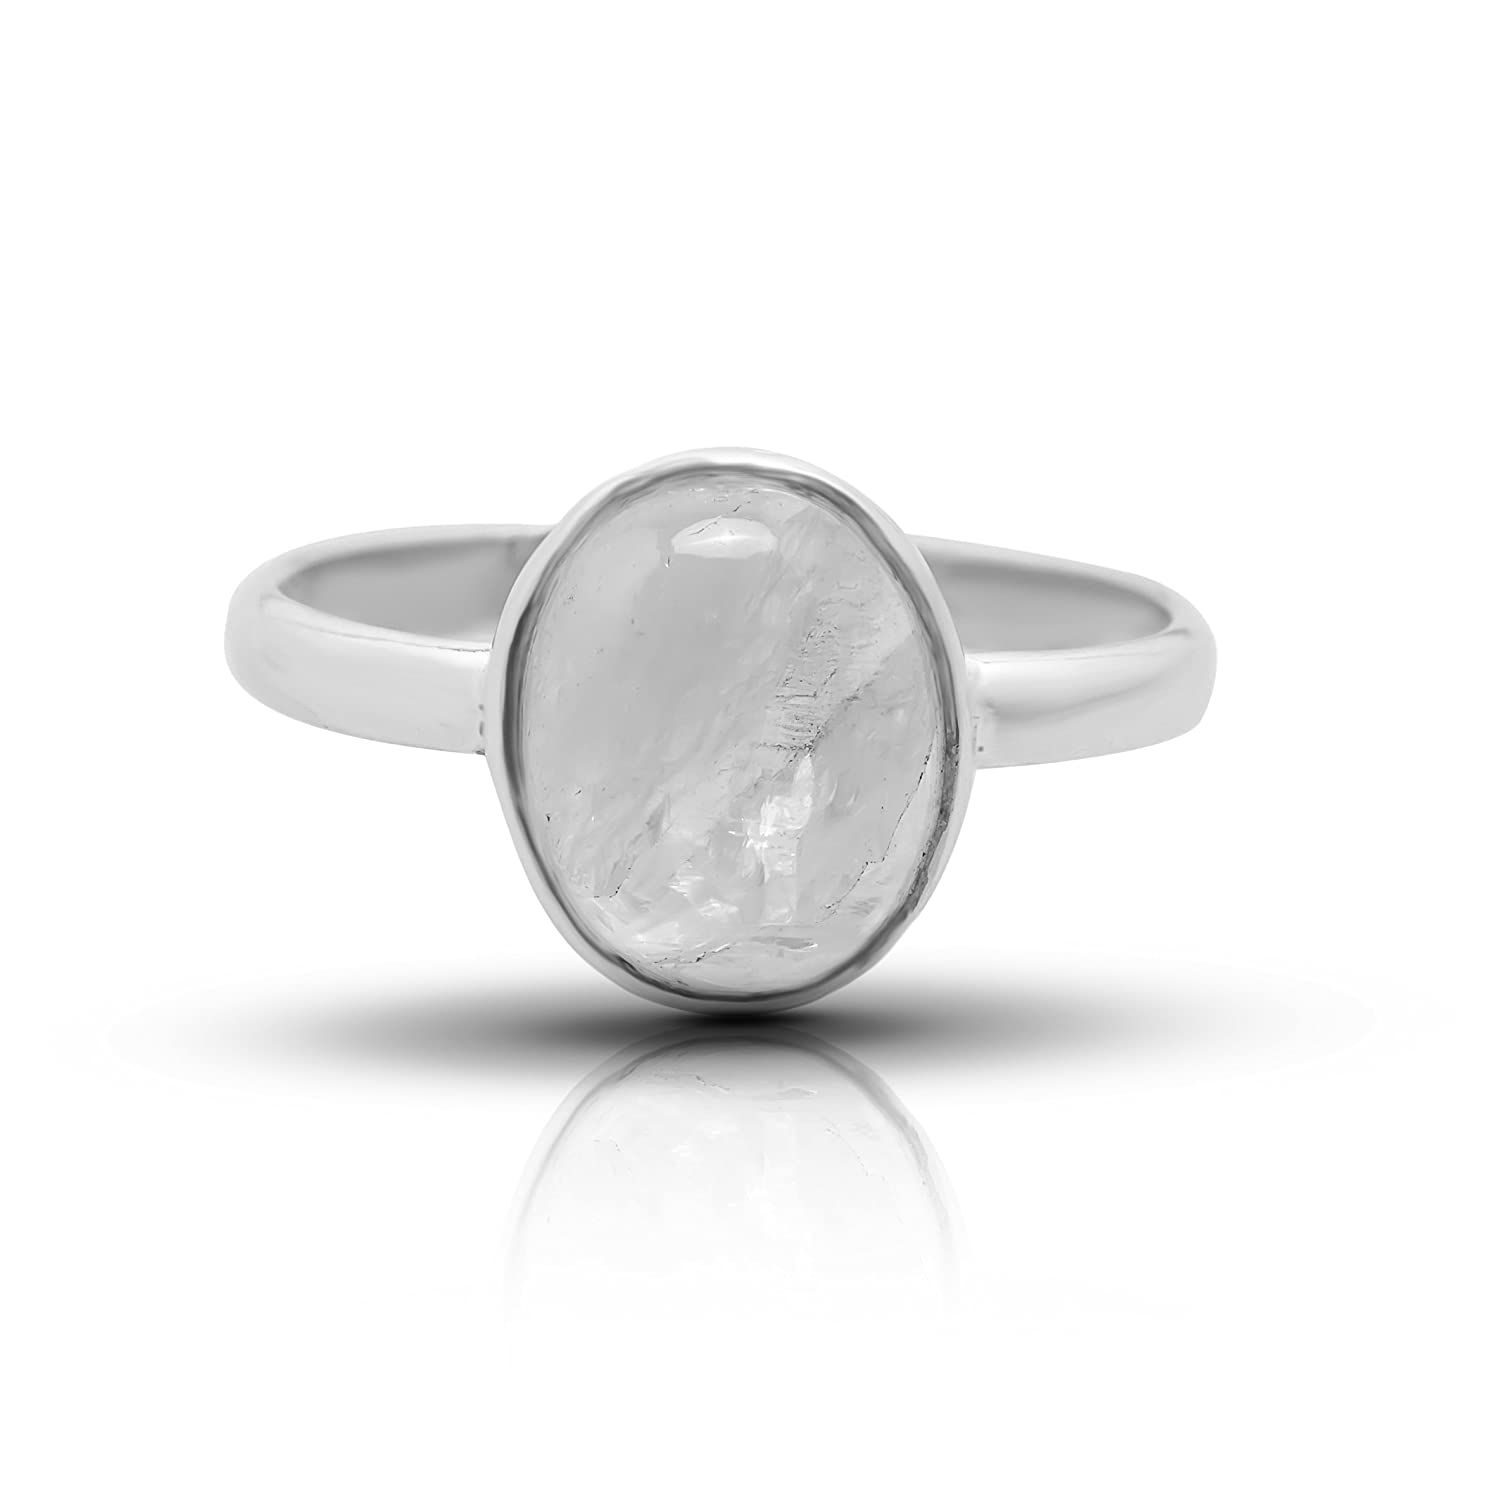 Moonstone Oval Stone Ring Tribal Gipsy Boho Look